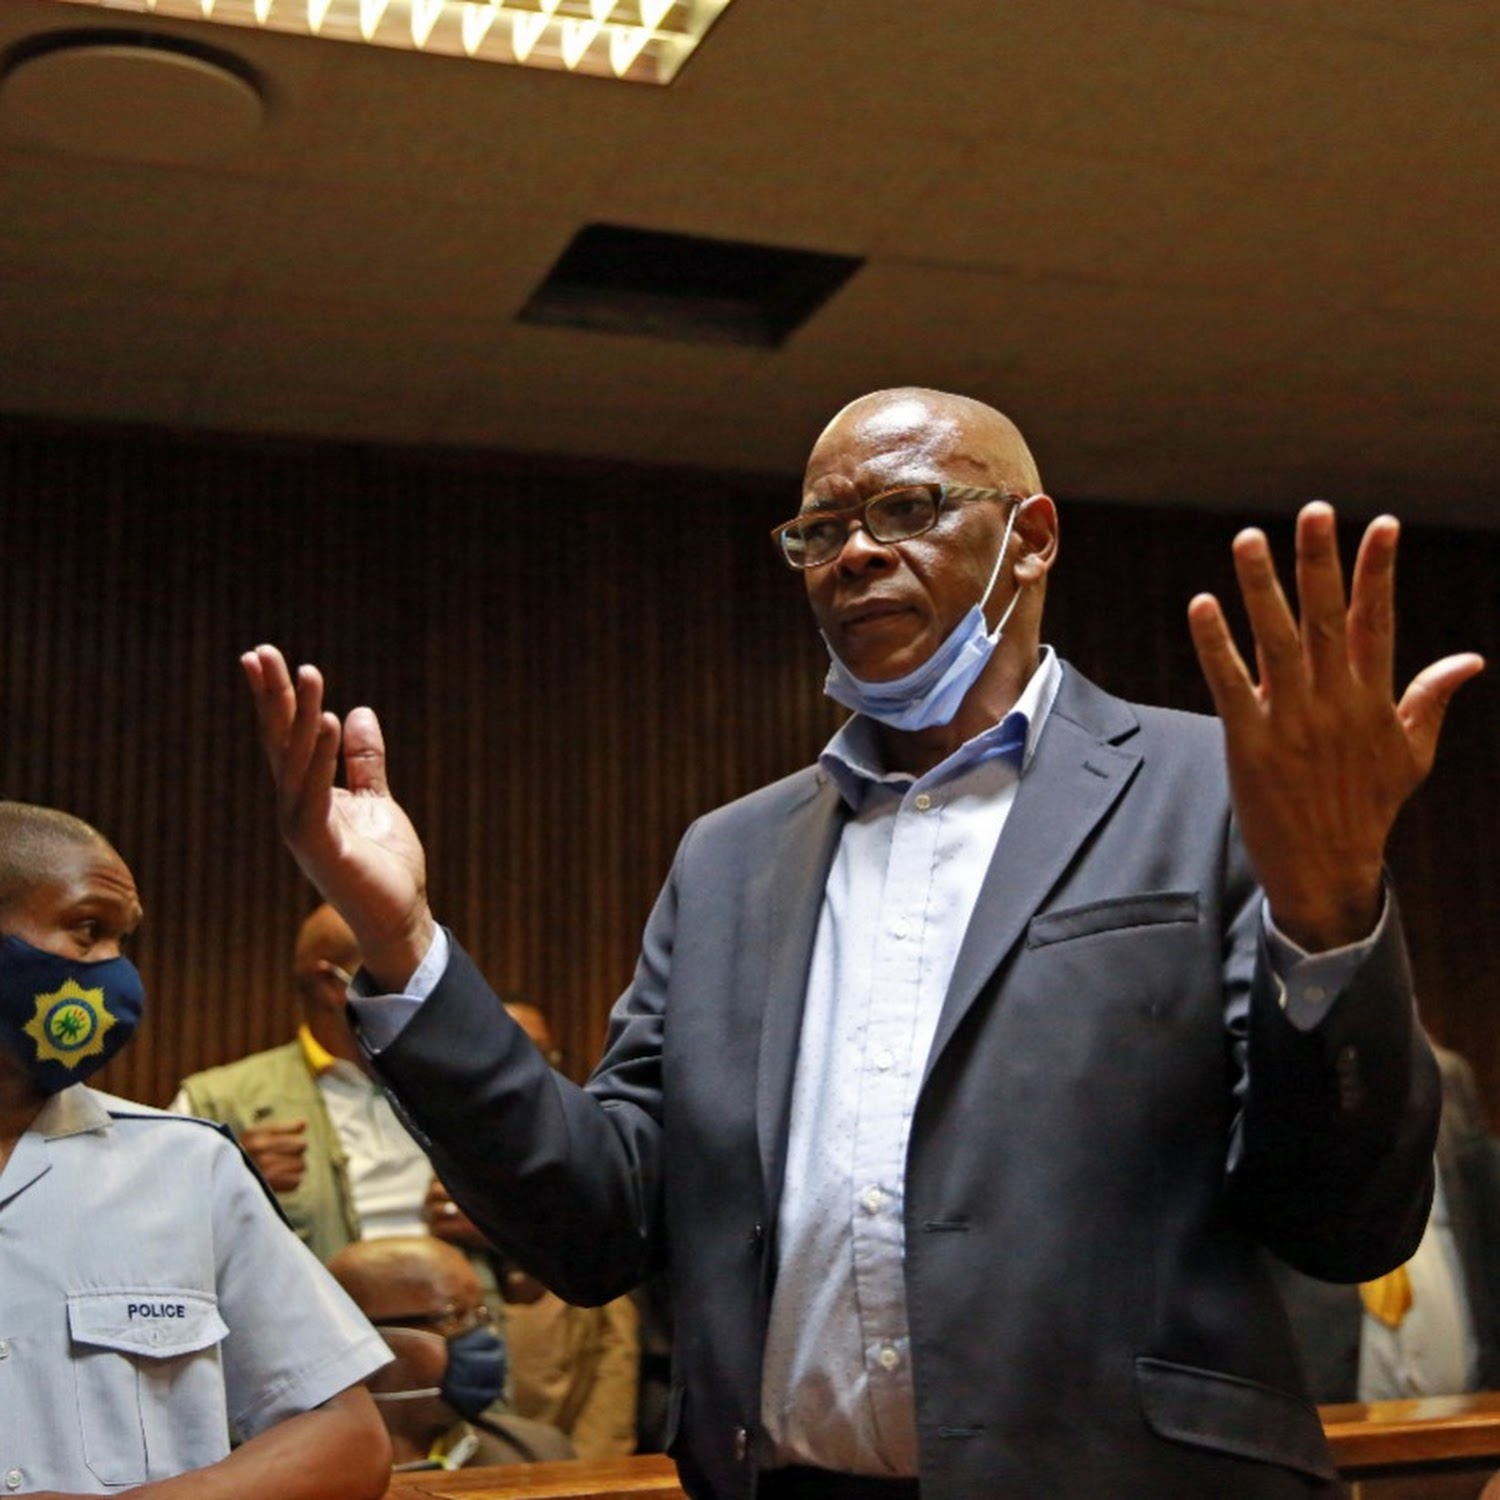 Ace Magashule bailed on R200,000, court hears he earns R133,000 salary from  ANC